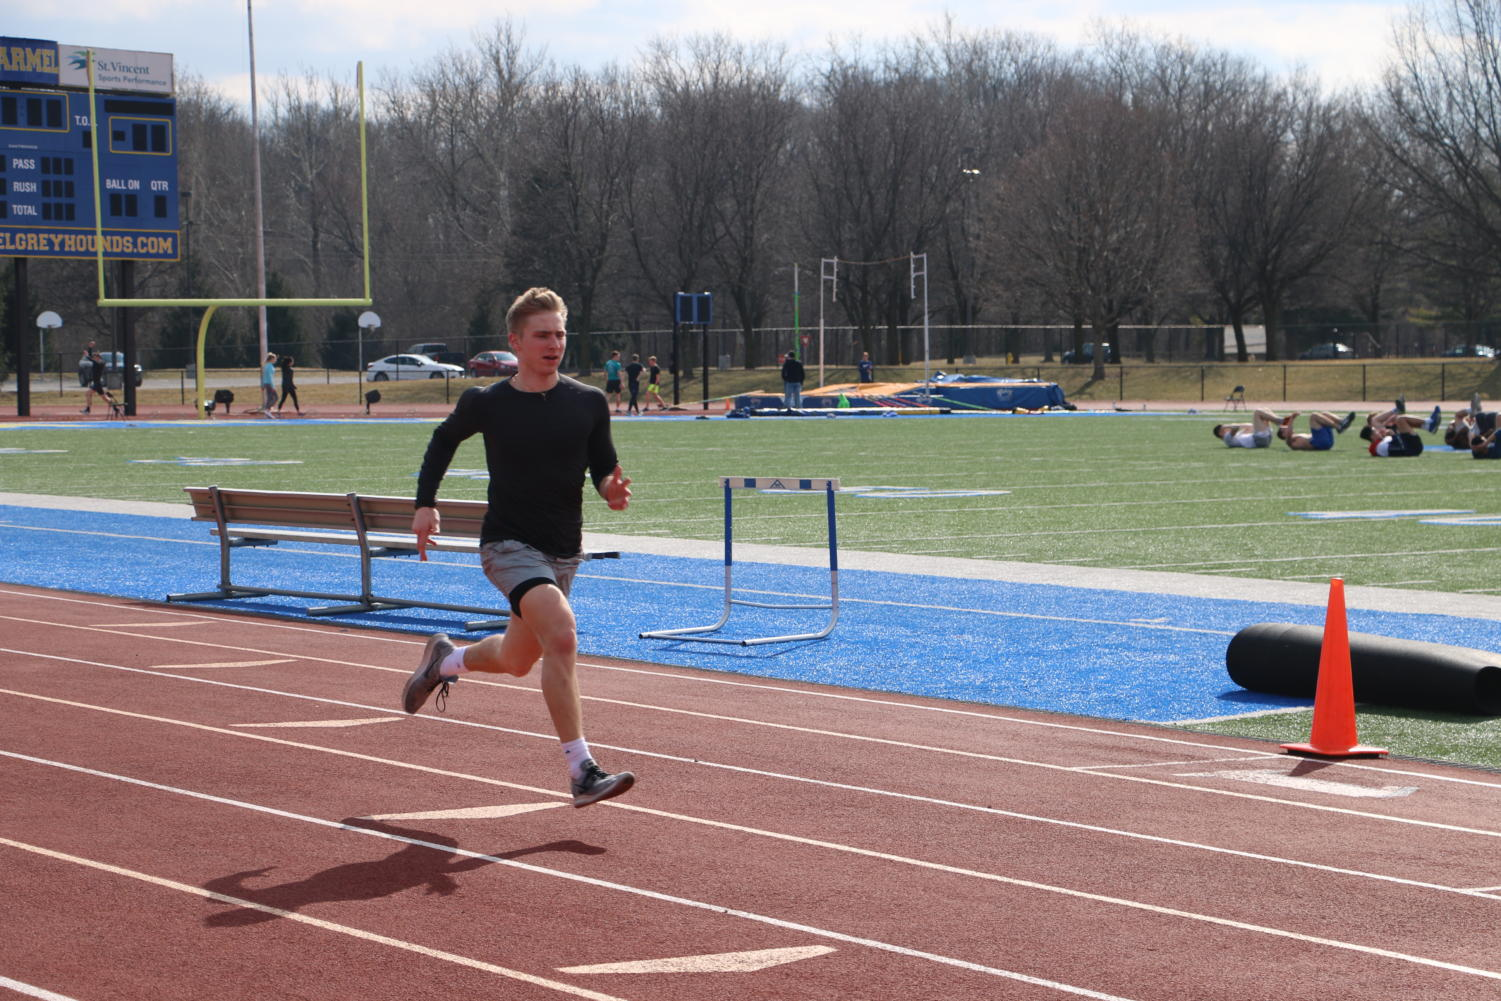 Men%27s+Track+and+Field%3A%0ASamuel+%28Sam%29+Rogers%2C+men%27s+track+runner+and+senior%2C+completes+a+sprint+during+practice+on+March+19.+The+team%27s+next+contest+will+take+them+to+Indiana+University+on+March+23%2C+where+they+will+compete+in+the+Hoosier+State+Relay+Finals.